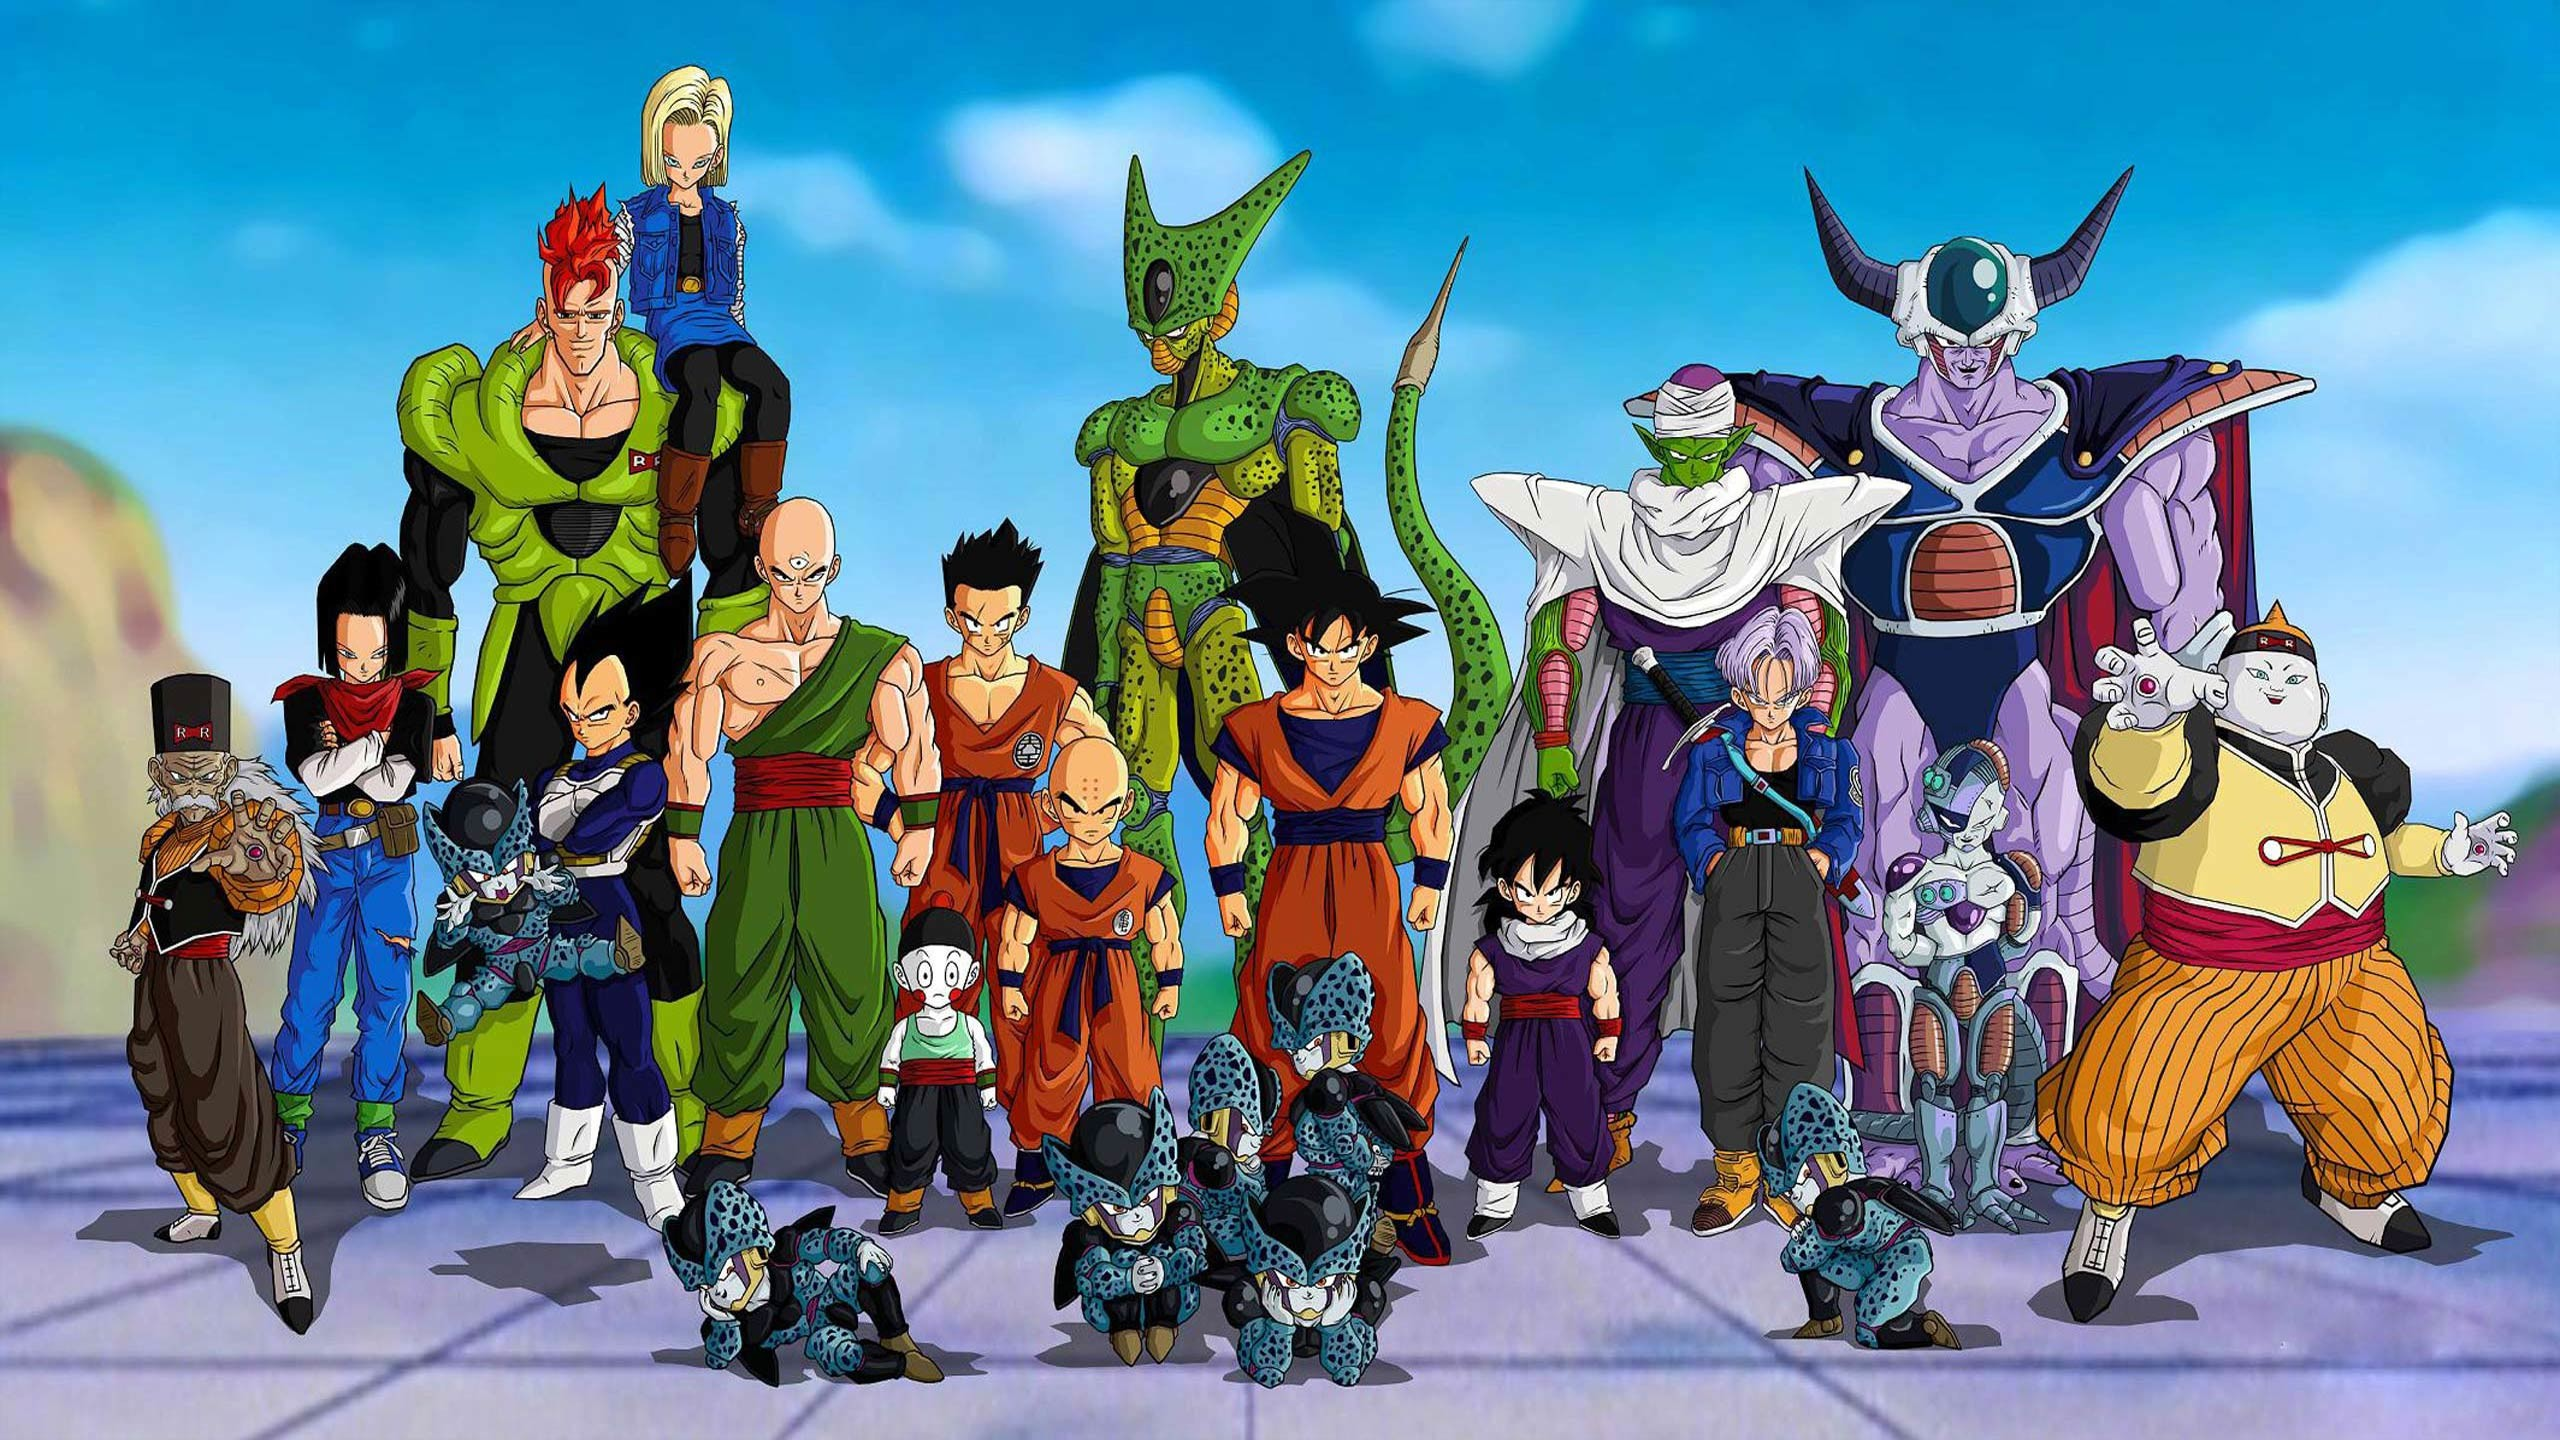 Dragon Ball Z DBZ HD Wallpapers, computer desktop wallpapers, pictures,  images